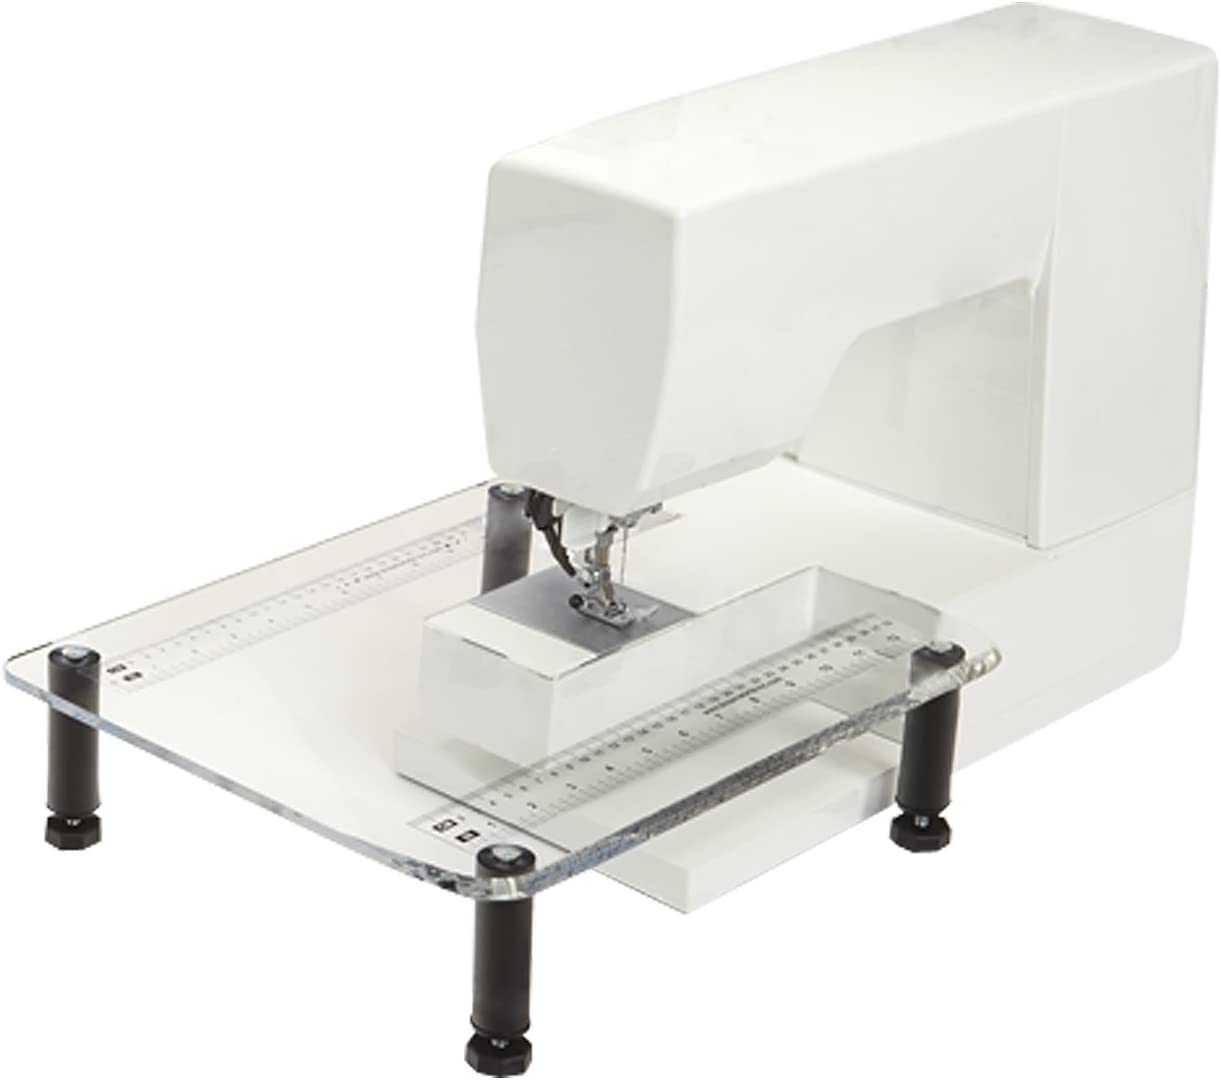 sewsteady Home Indoor Junior Sewing Max 82% OFF 1 year warranty 15